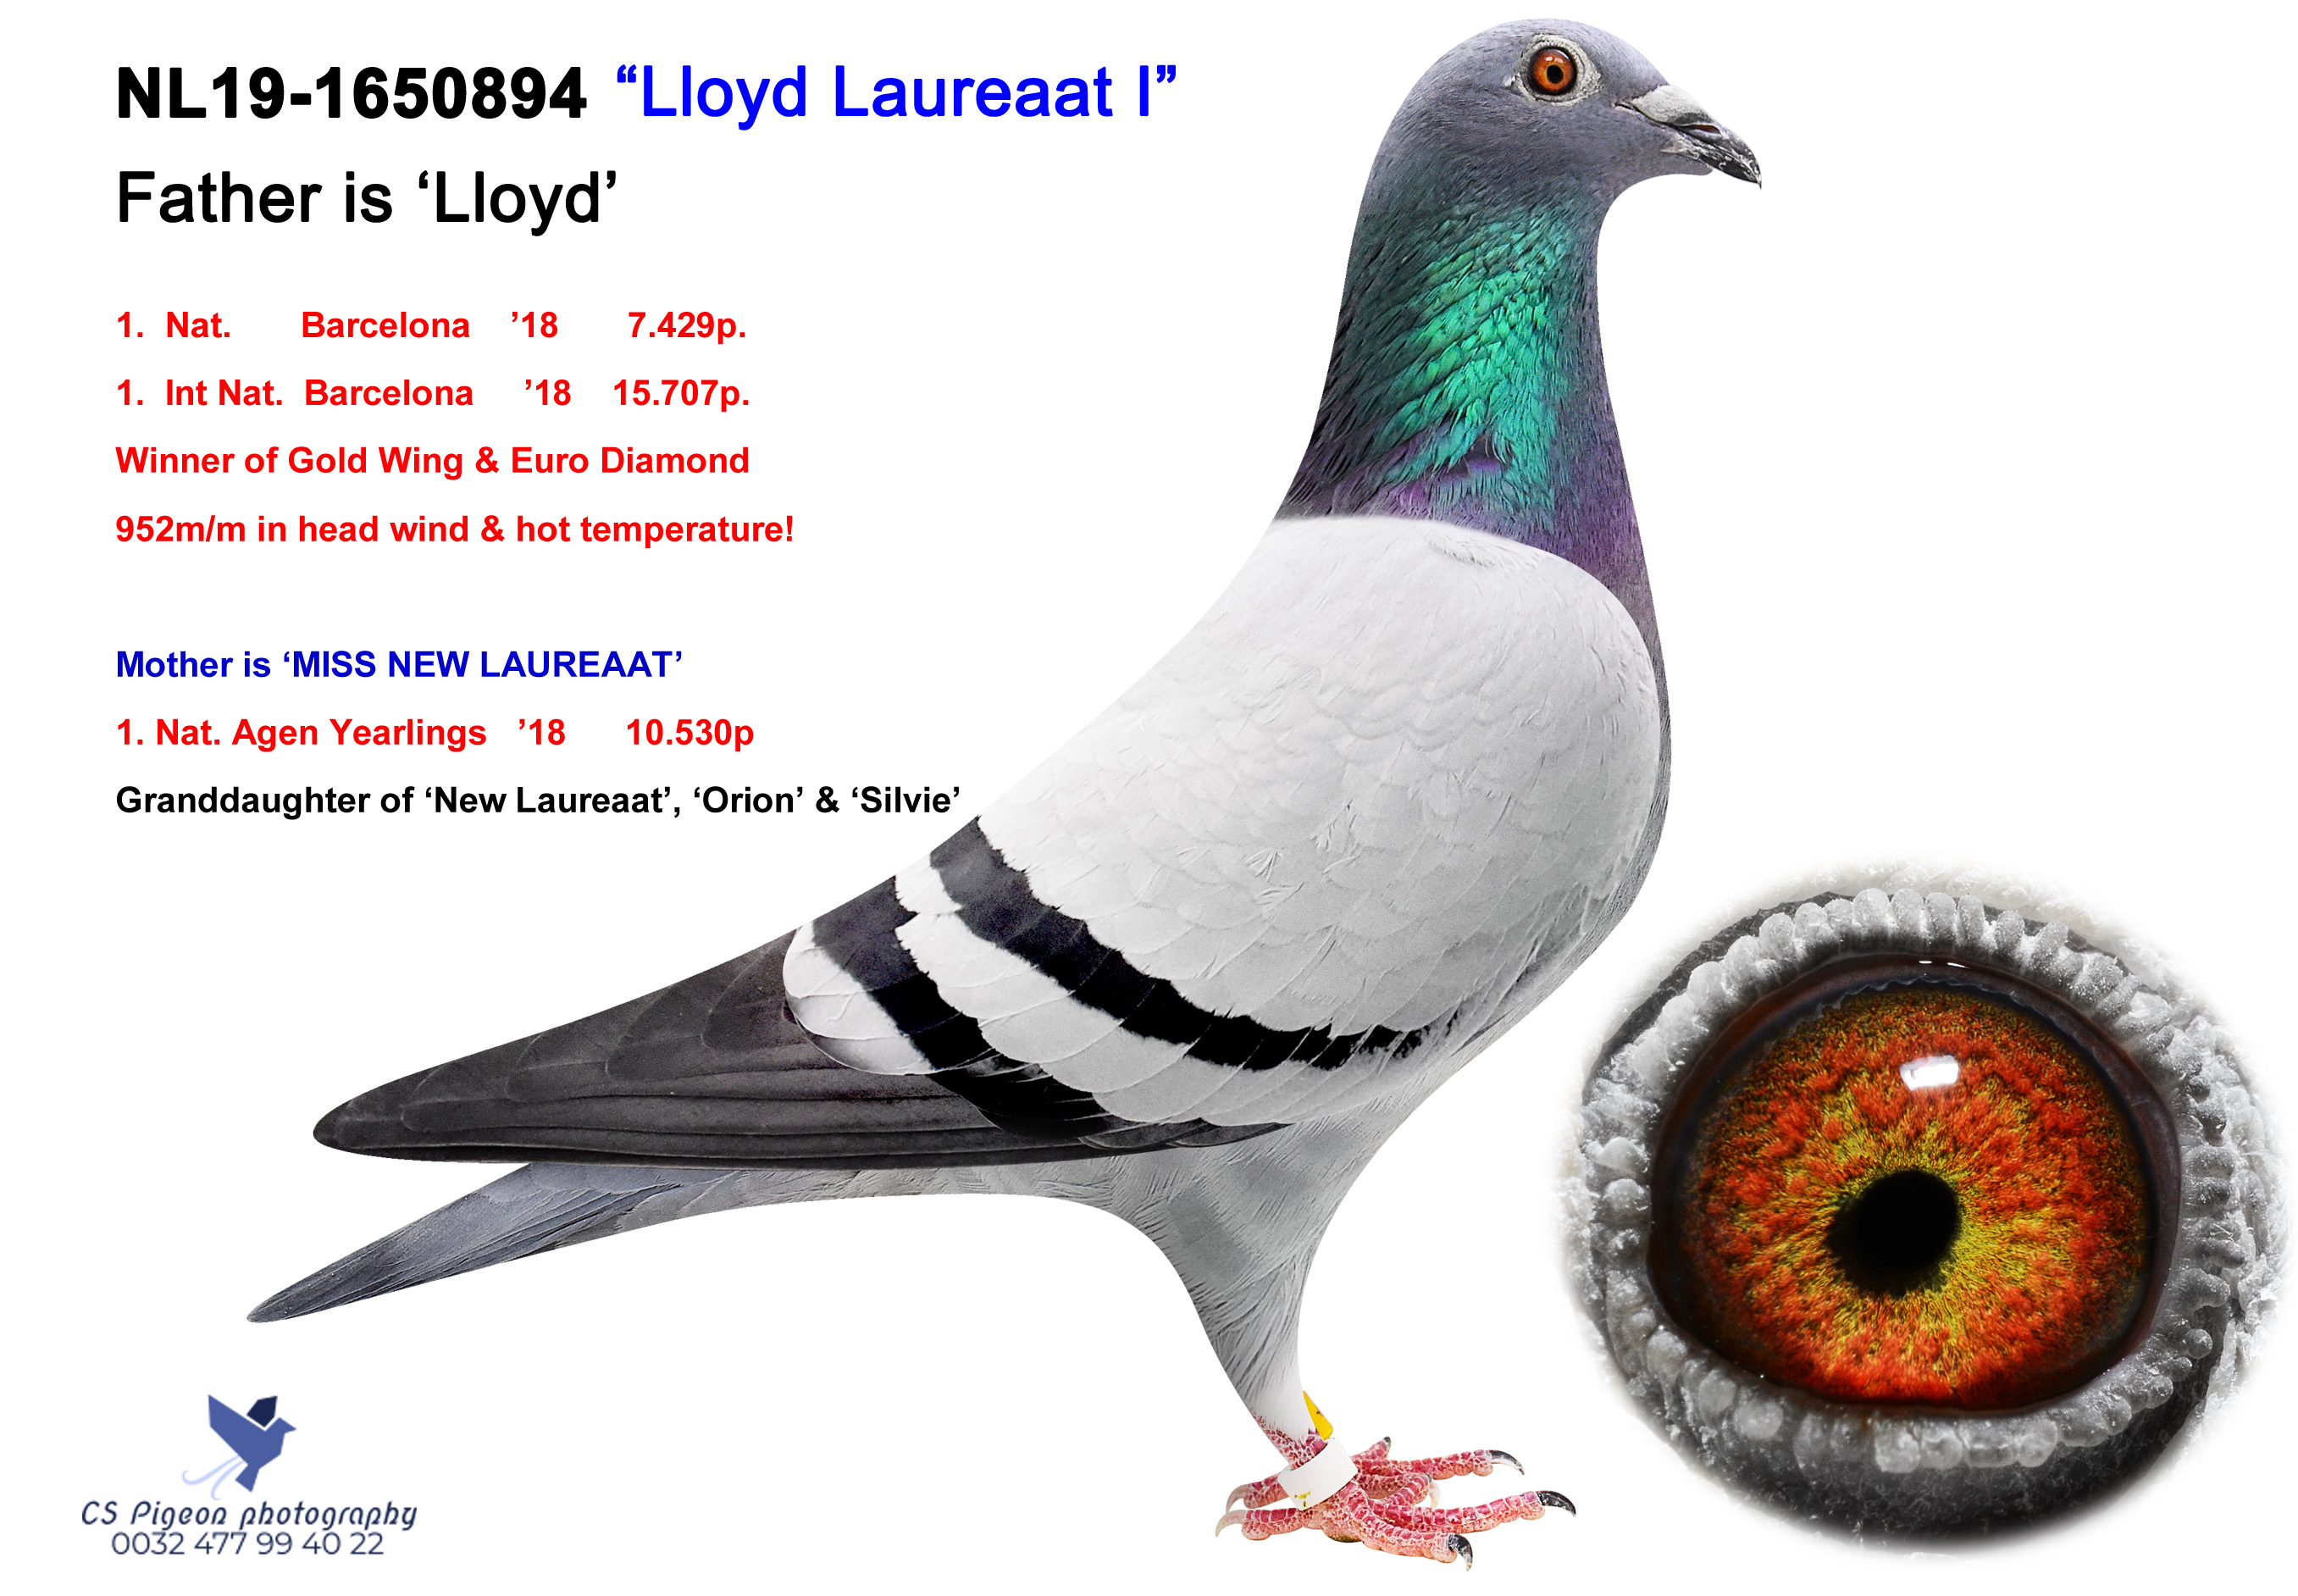 Lloyd Laureaat I